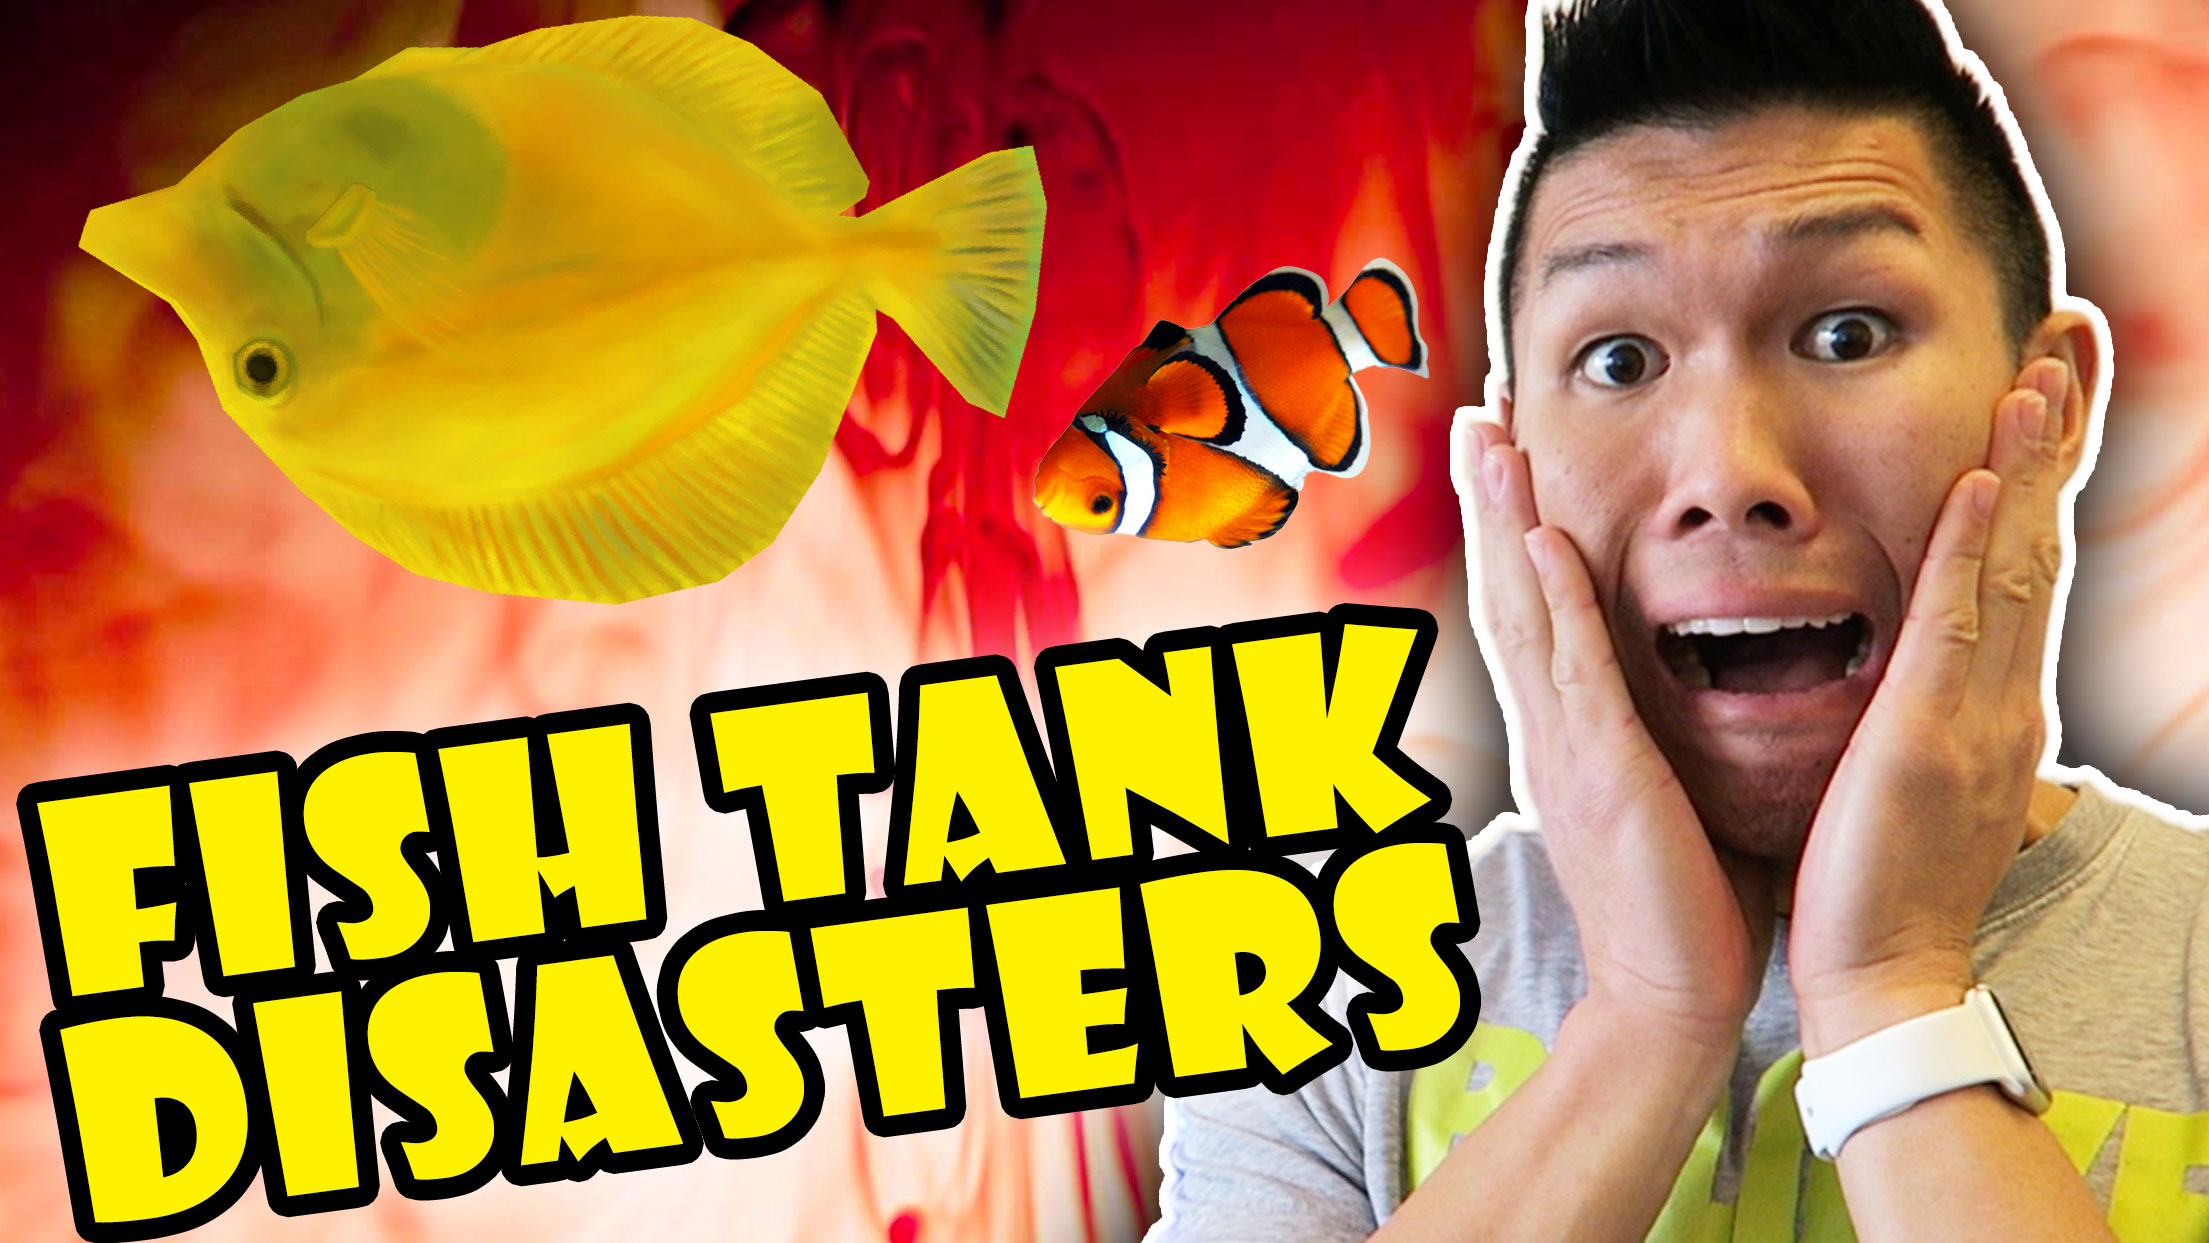 1st Year FISH DISASTERS IN $3,000 AQUARIUM